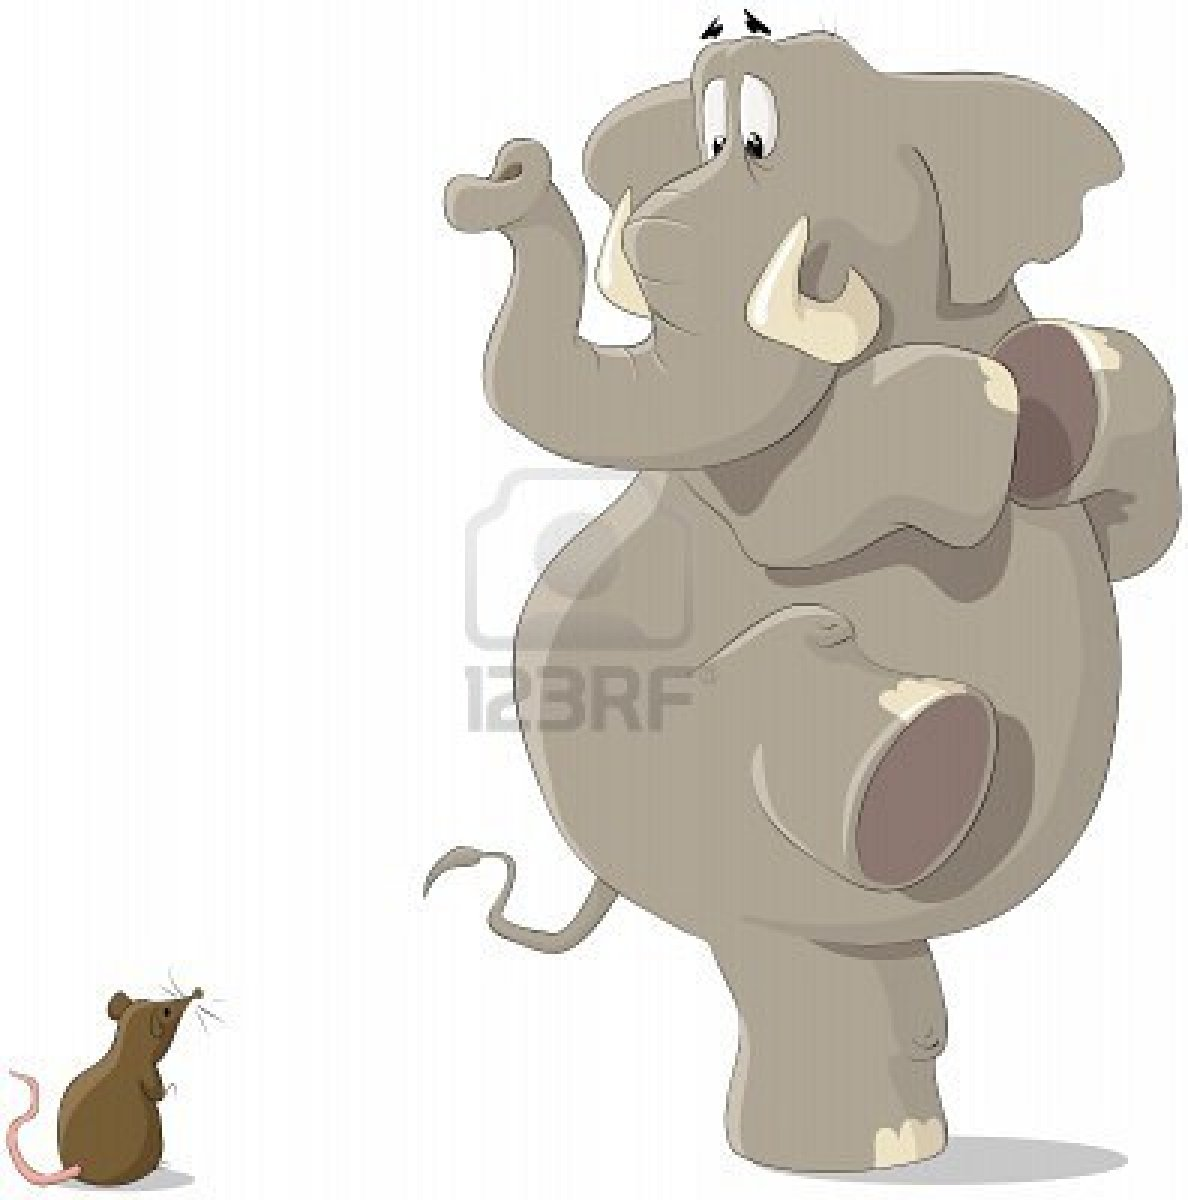 7804940-the-elephant-was-frightened-of-a-small-mousy